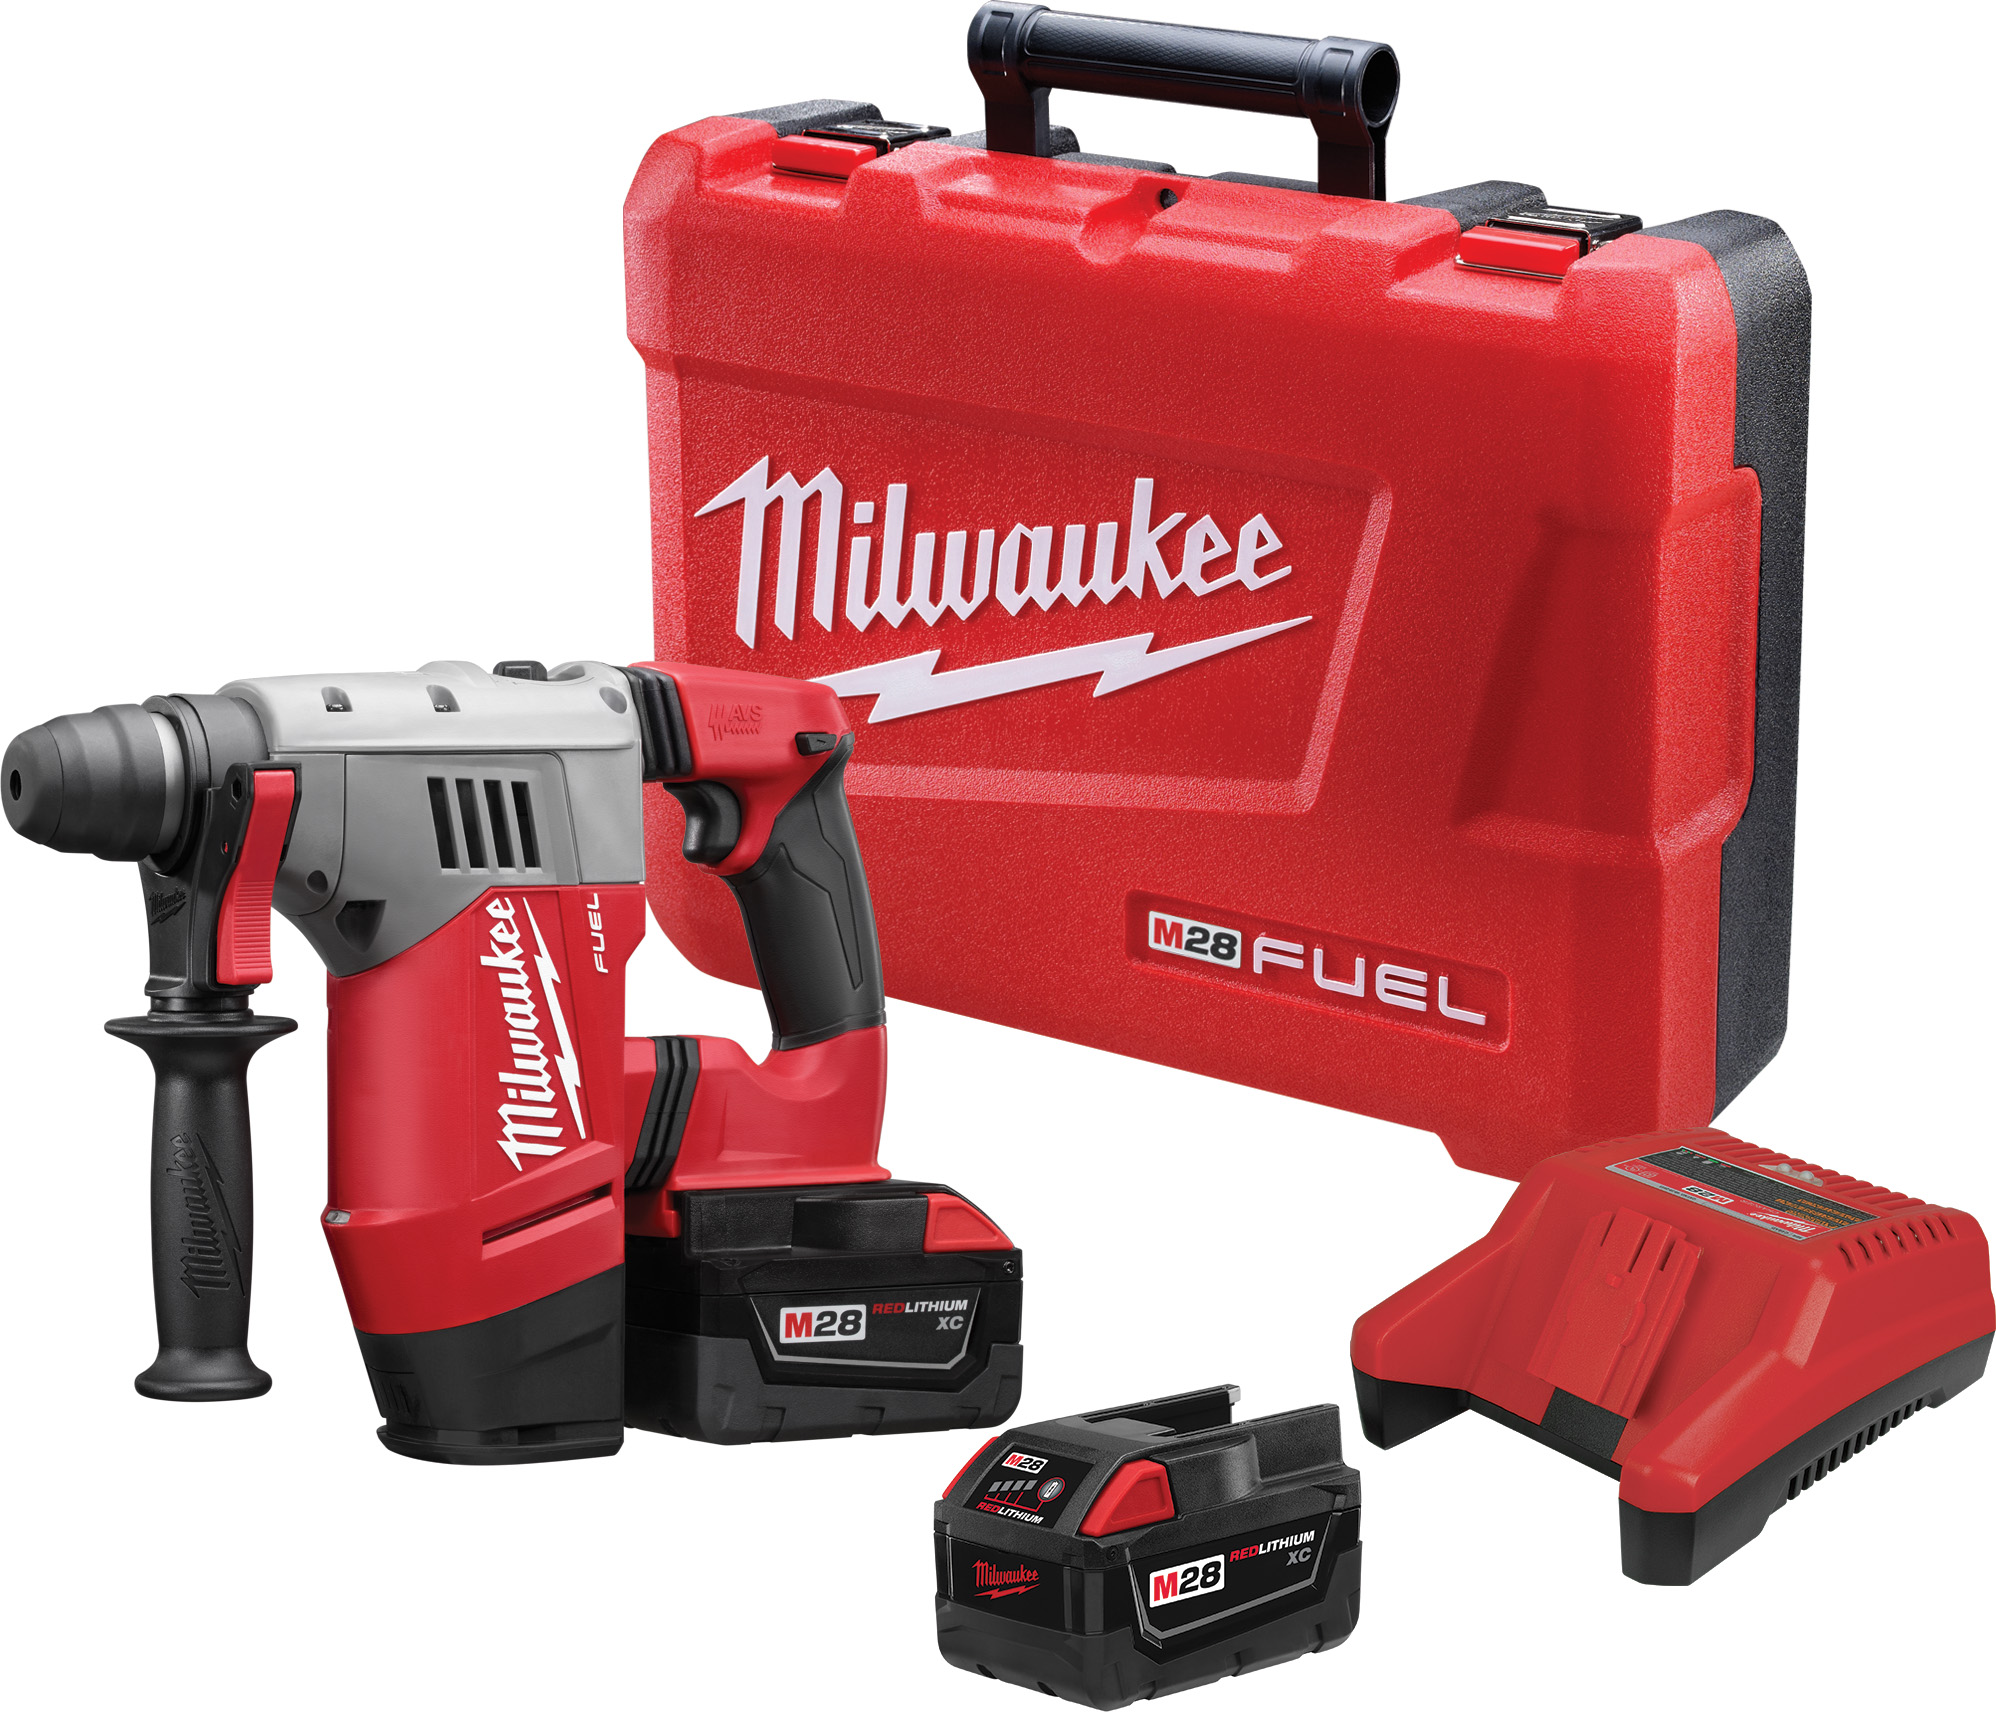 Milwaukee® 0726-22 M28™ Cordless Hammer Drill Kit, 1/2 in Metal Single Sleeve Ratcheting Lock Chuck, 28 VDC, 0 to 450/0 to 1800 rpm No-Load